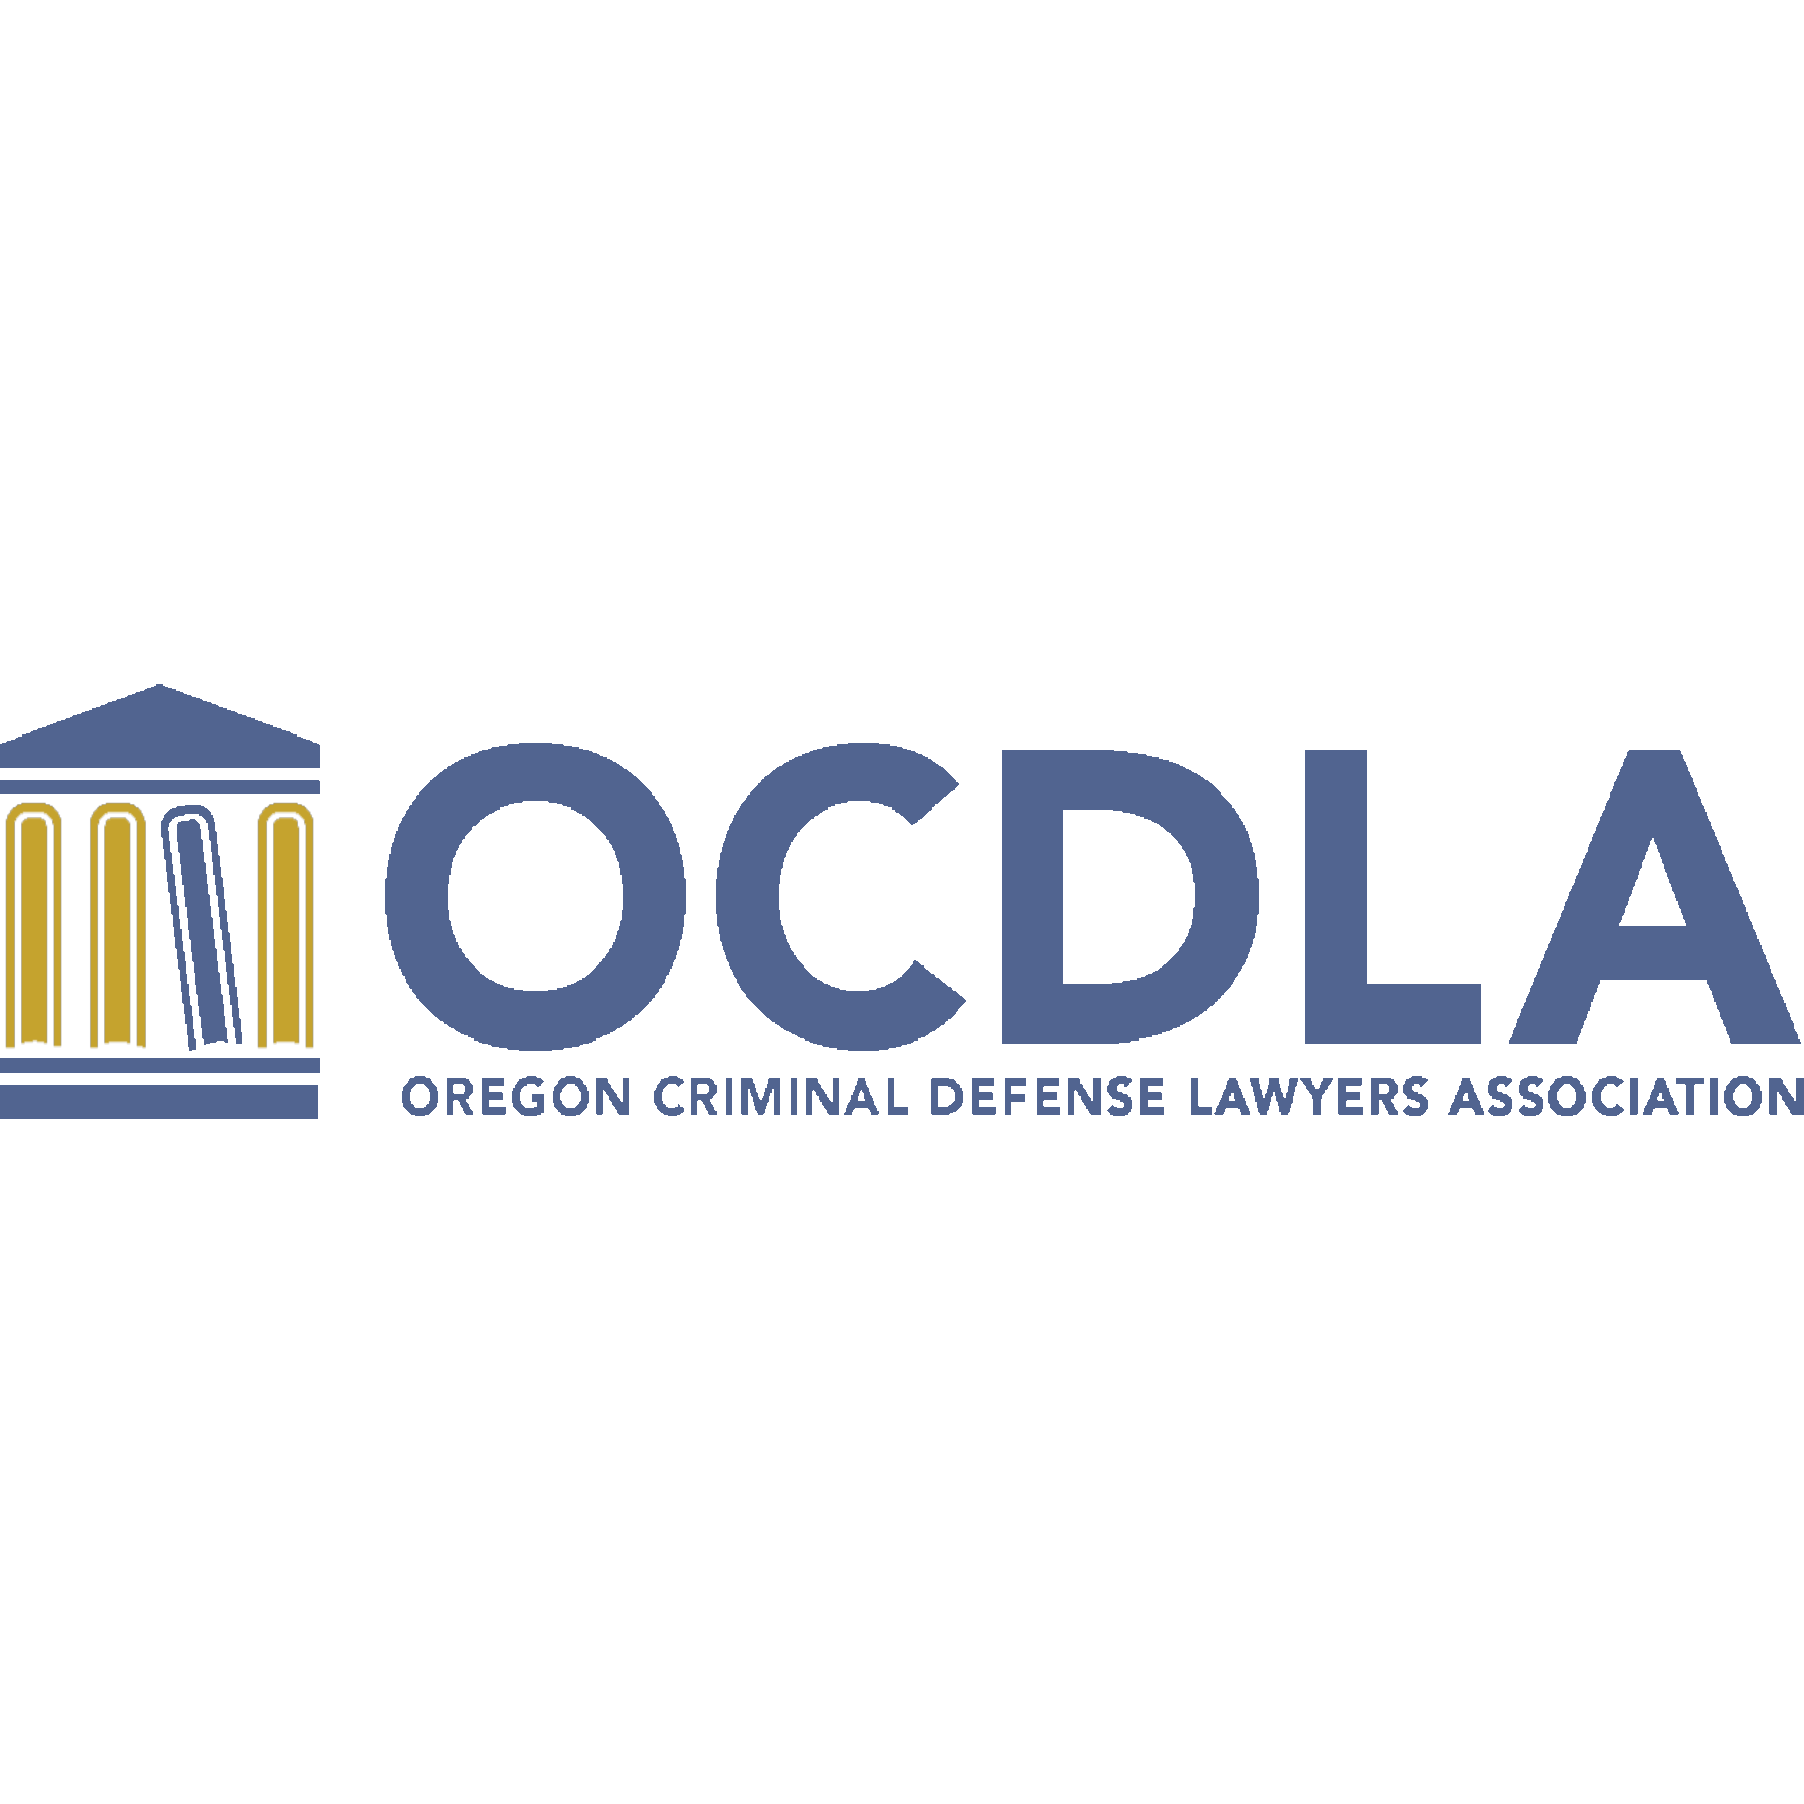 Oregon Criminal Defense Lawyers Association